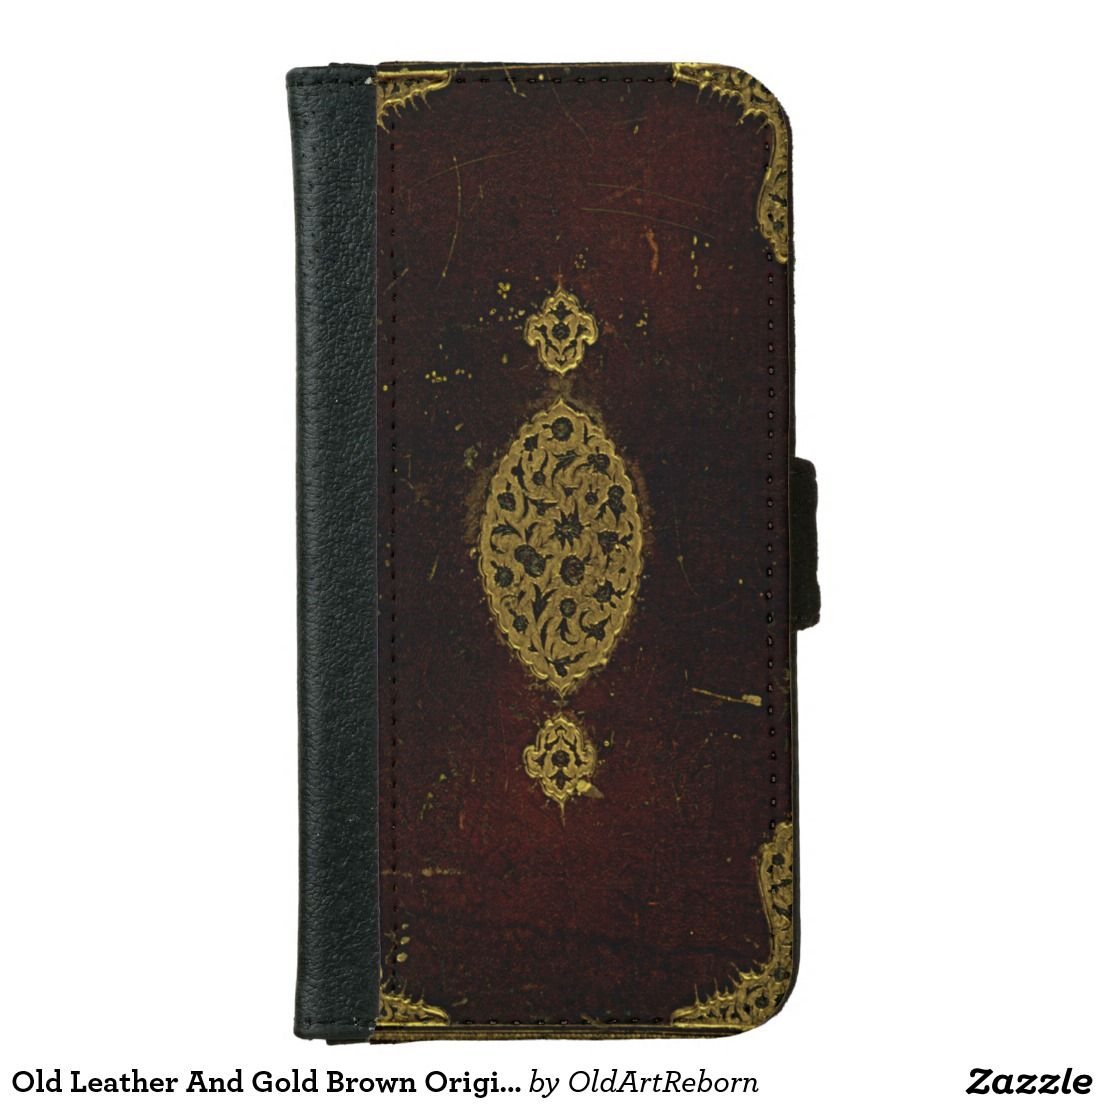 Old Leather And Gold Brown Original Book Cover iPhone 6 Wallet Case